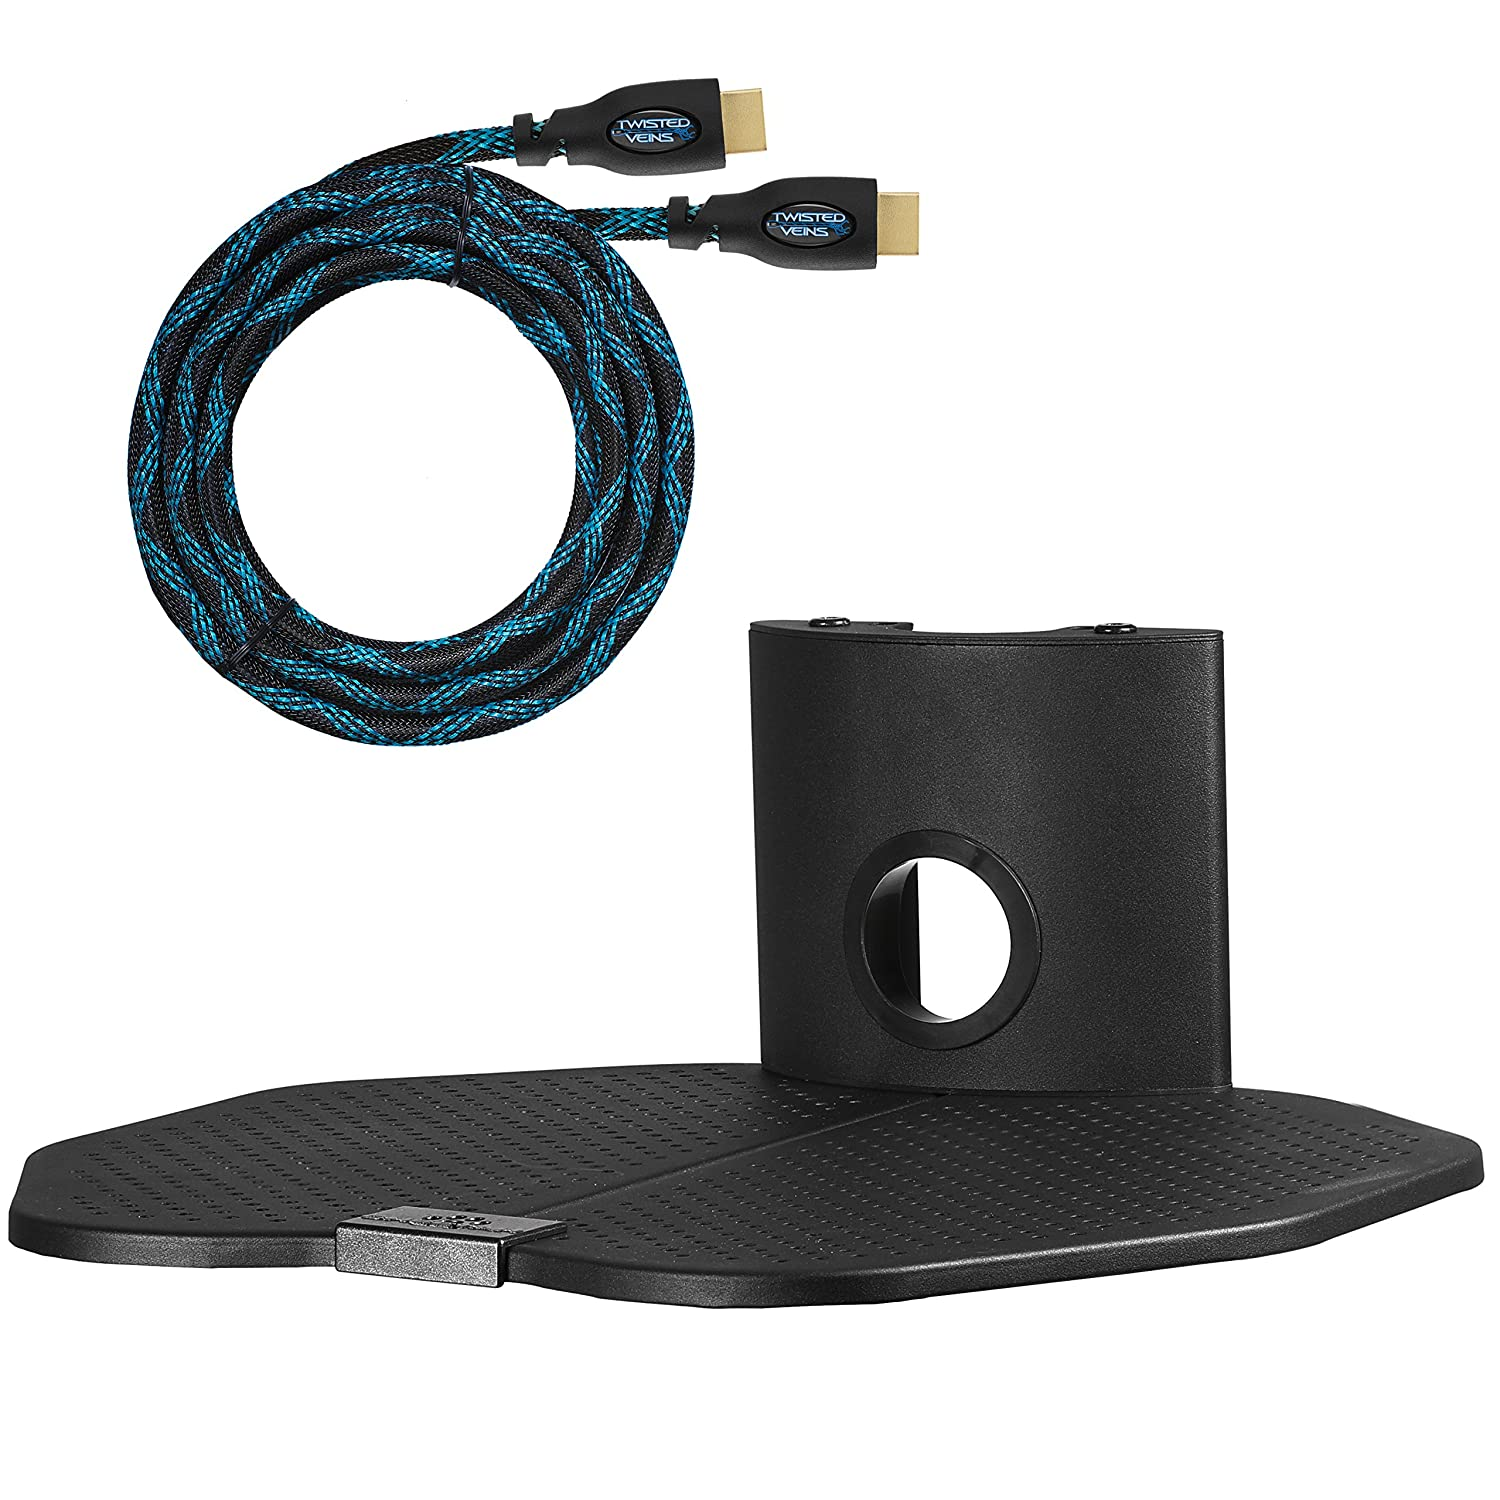 Amazon cheetah mounts as1b single shelf tv component wall amazon cheetah mounts as1b single shelf tv component wall mount 18x16 inch shelving bracket bundle with 15 feet hdmi cable home audio theater amipublicfo Gallery